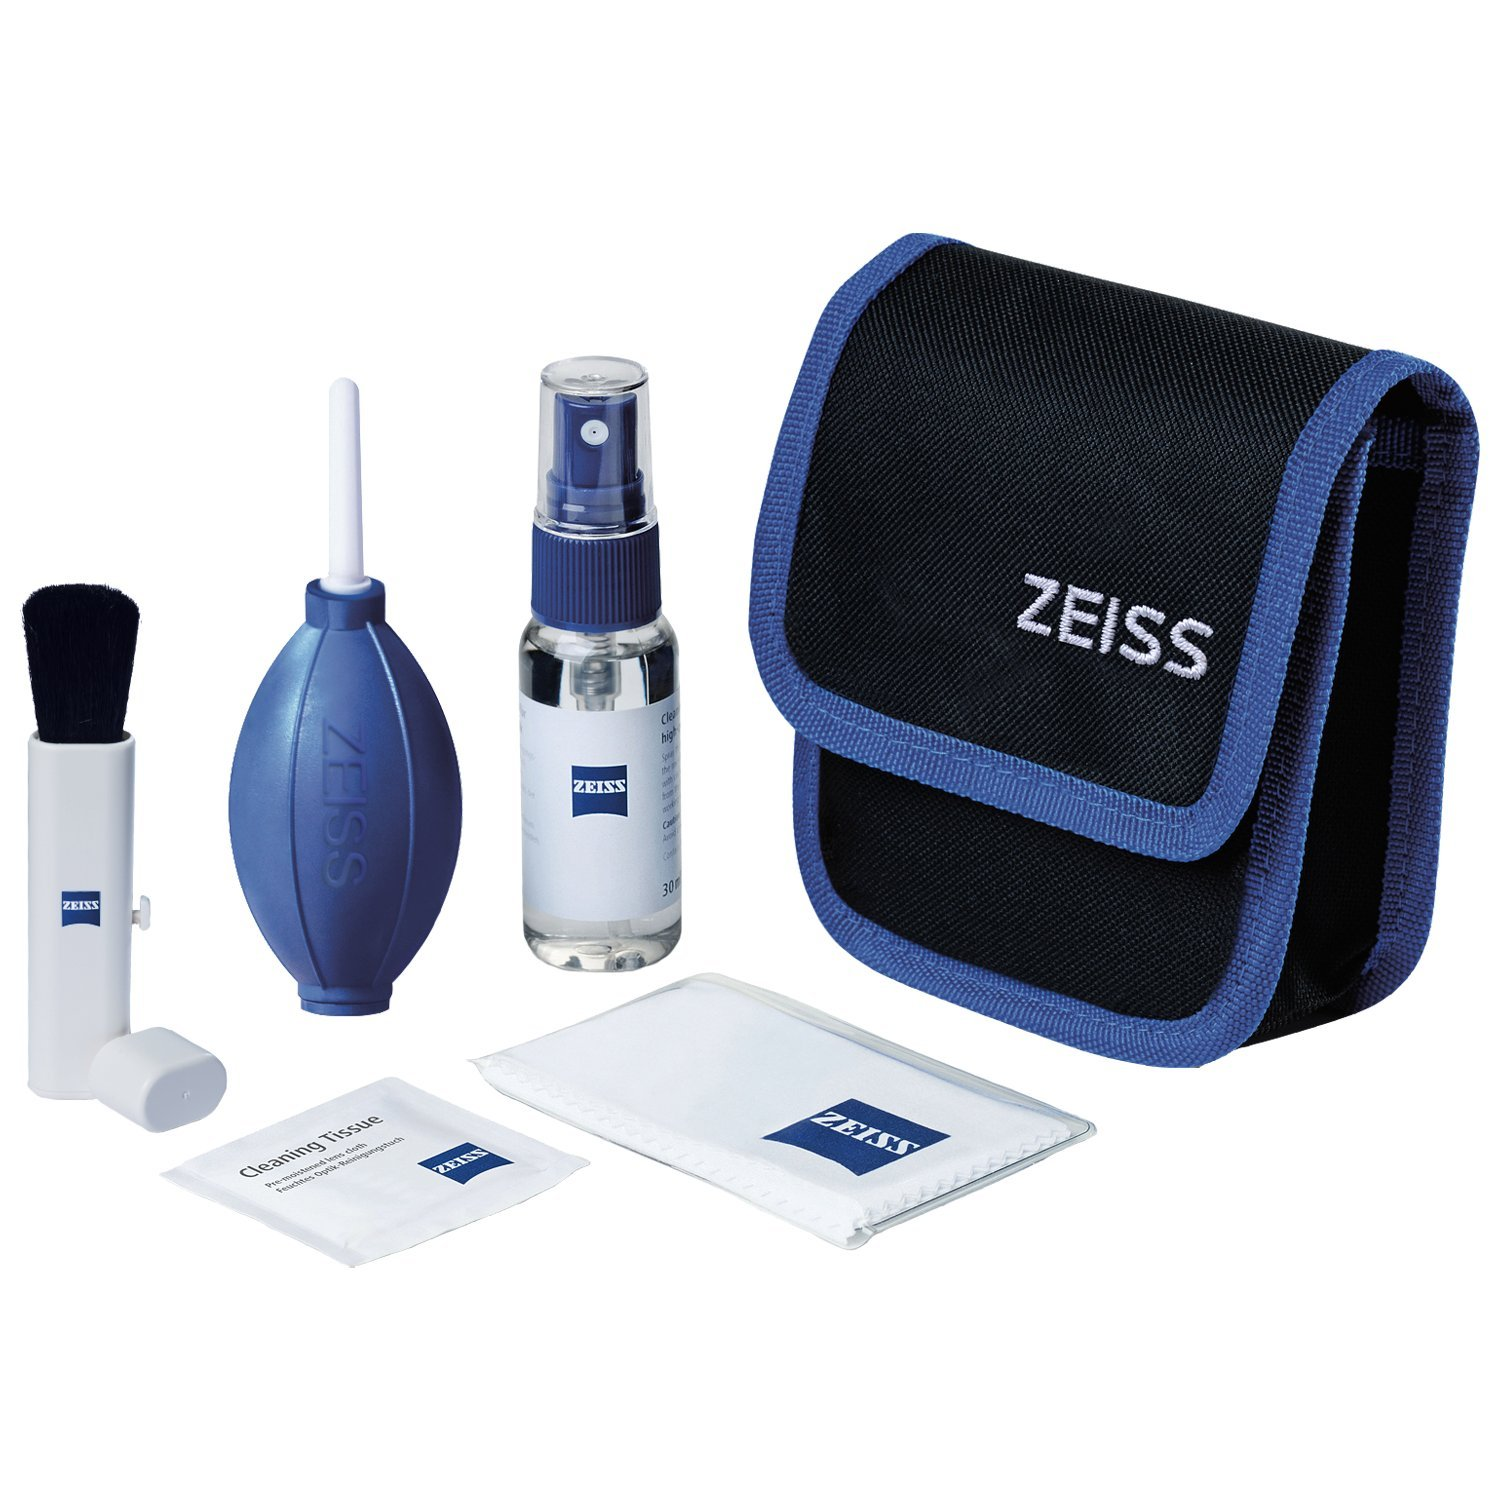 Zeiss Lens Cleaning Kit by Zeiss